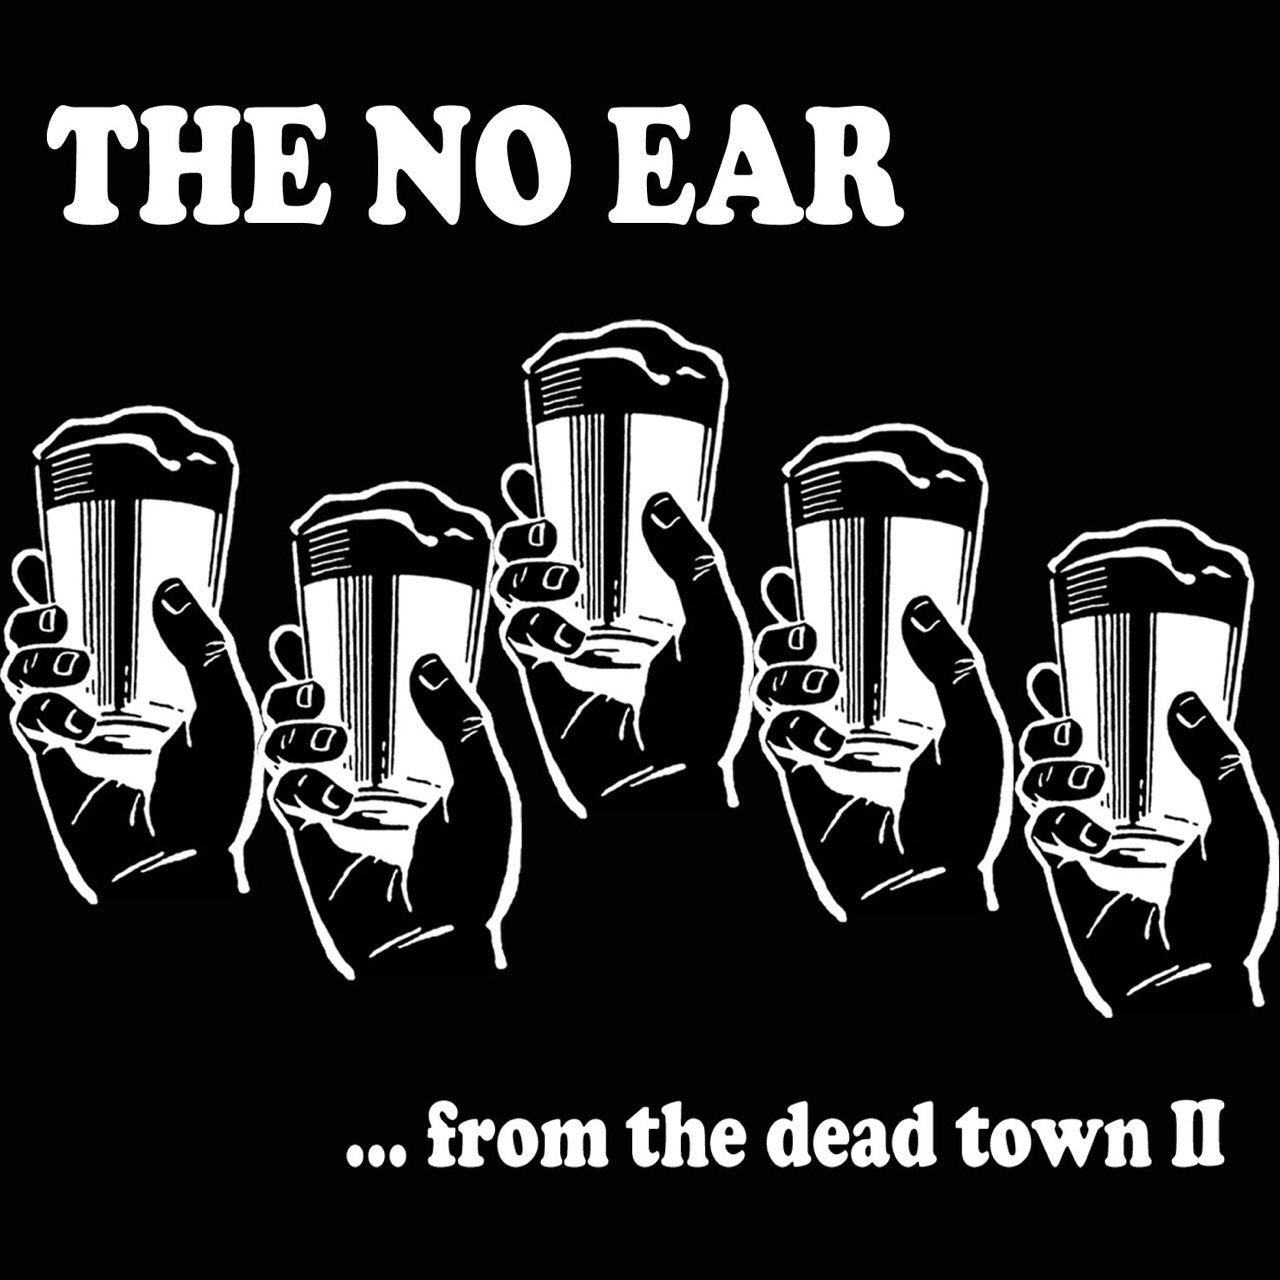 ... from the dead town Ⅱ